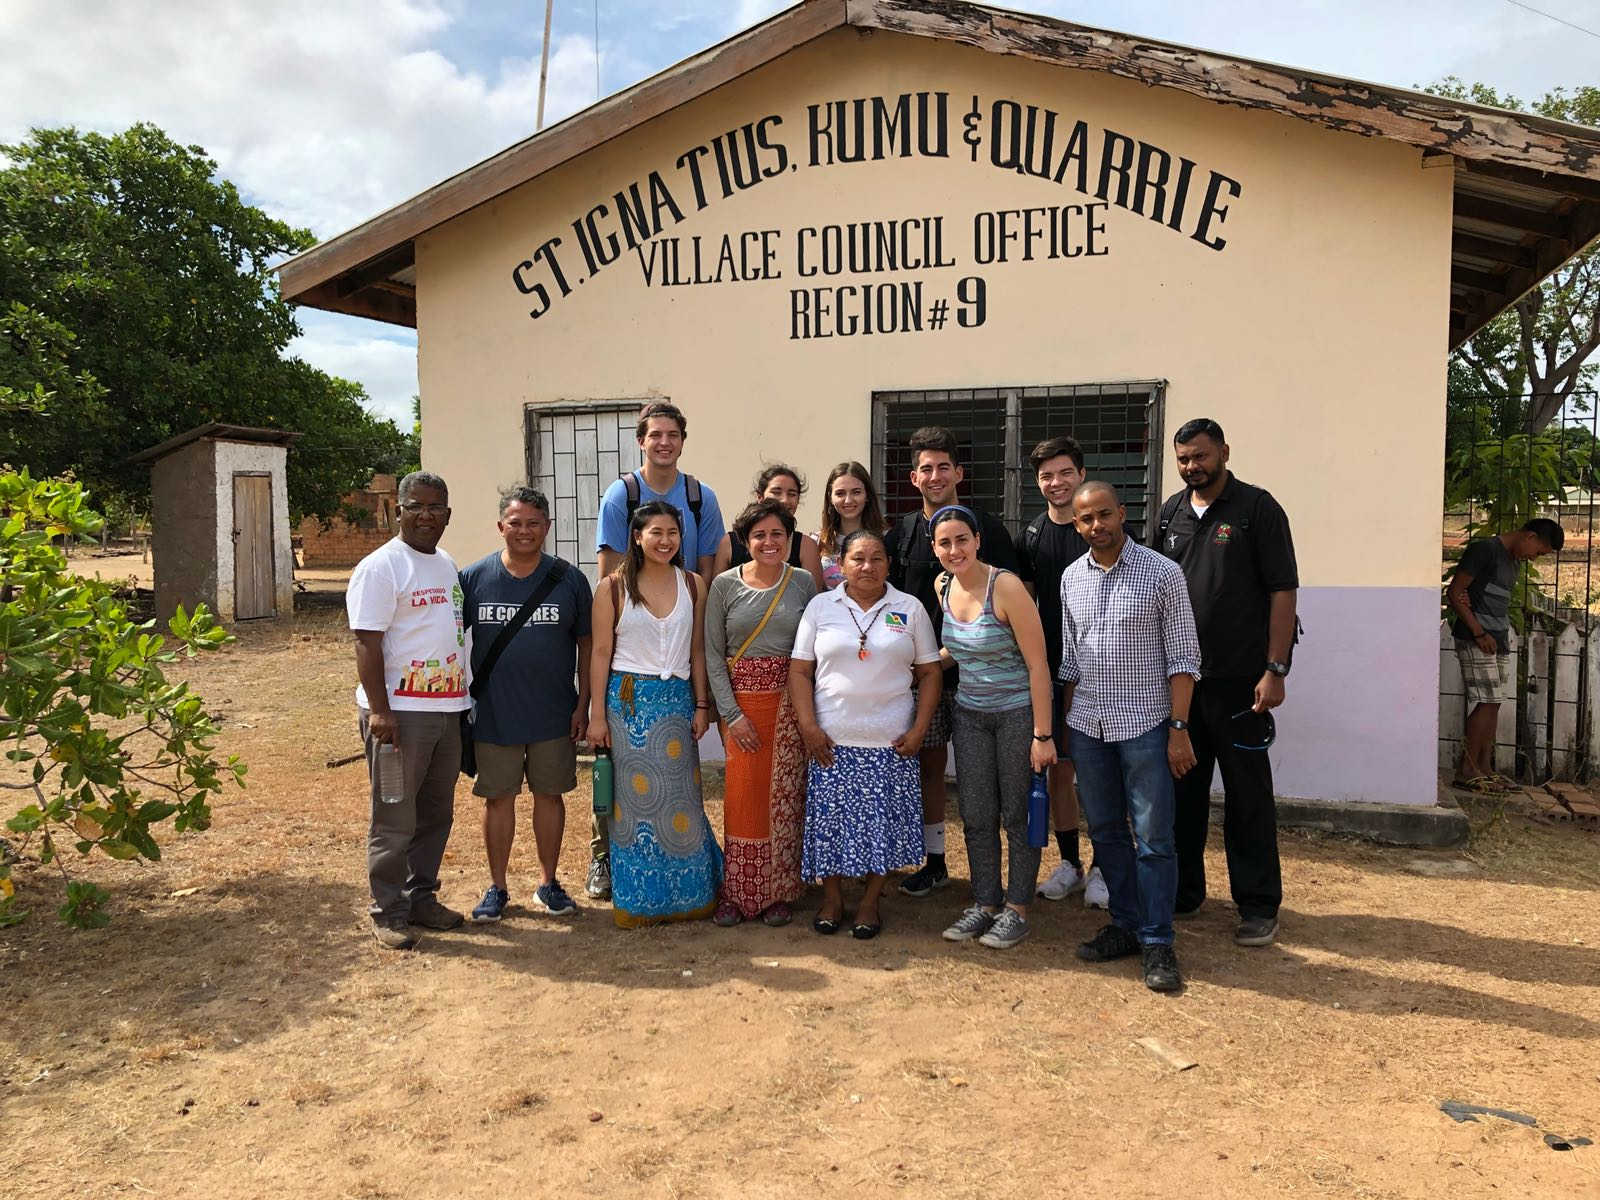 Guyana - We visit the beautiful capital of Guyana: Georgetown, then fly south to the border with Brazil, to the City of Lethem, to learn about the past, present and future of Amerindian communities.